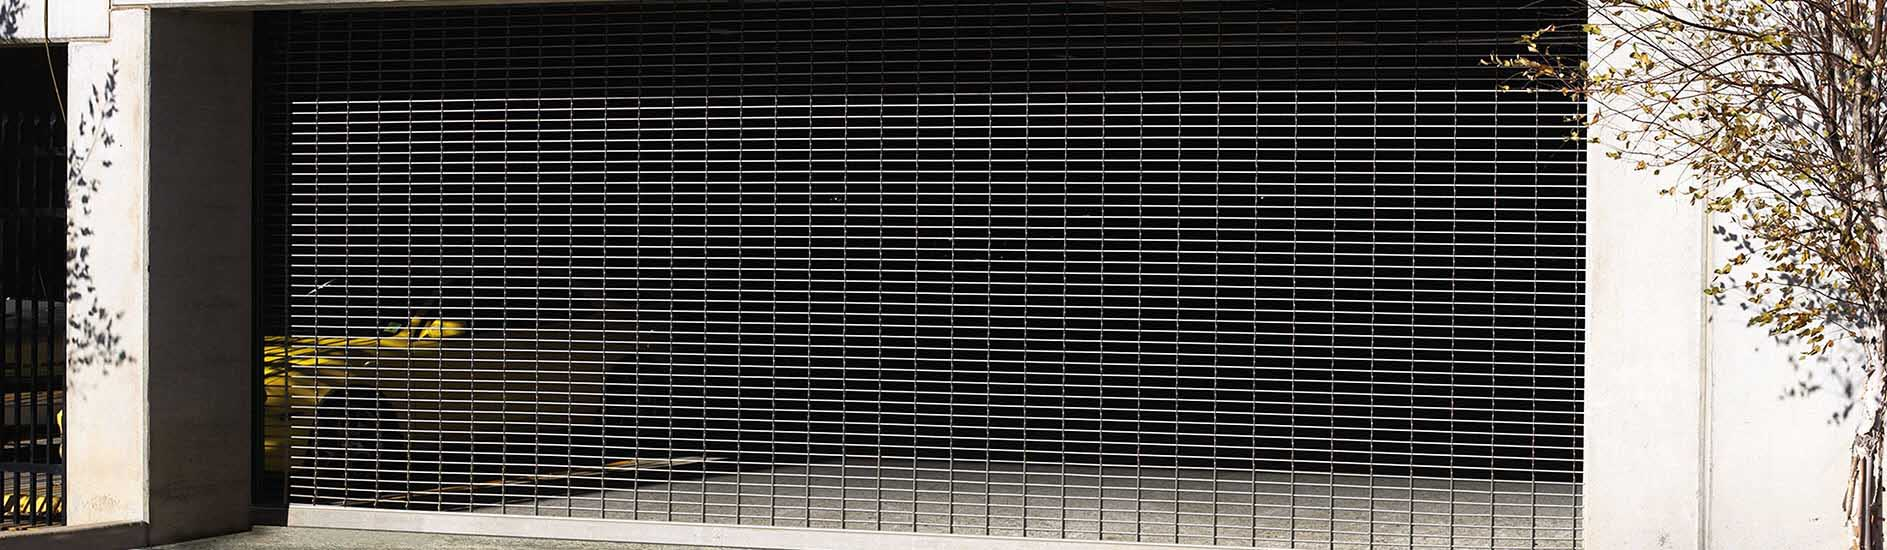 parking garage grille doors